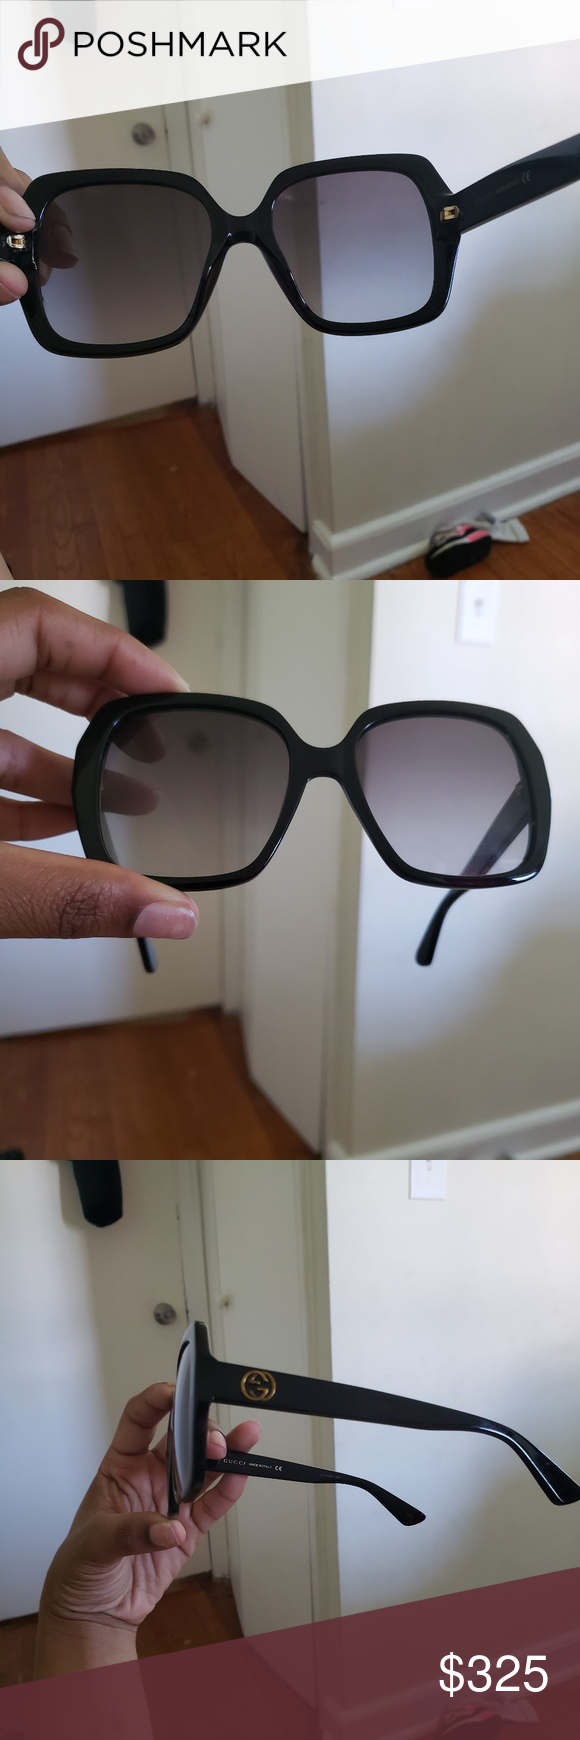 03439b7af8c BRAND NEW gucci glasses never worn Gucci sunglass black gucci on one side  bee on the other brand new with case. Never been worn Gucci Accessories  Sunglasses